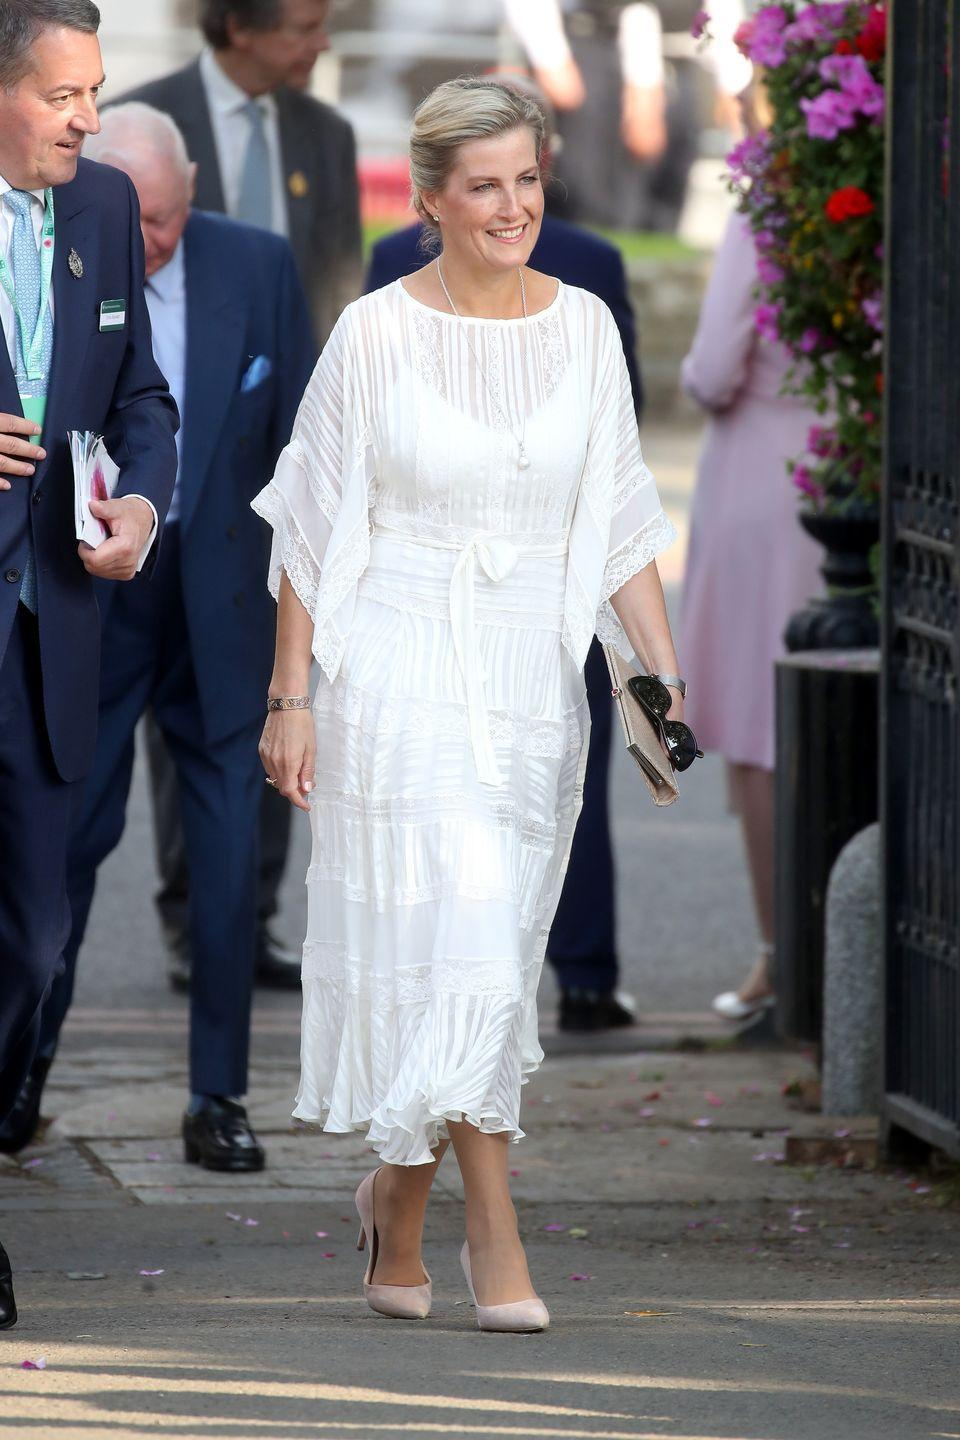 """<p>Sophie looked ethereal in a flowing white dress at <a href=""""https://www.townandcountrymag.com/society/tradition/g20777500/royal-family-chelsea-flower-show-2018-photos/"""" rel=""""nofollow noopener"""" target=""""_blank"""" data-ylk=""""slk:this year's Chelsea Flower Show"""" class=""""link rapid-noclick-resp"""">this year's Chelsea Flower Show</a>.</p>"""